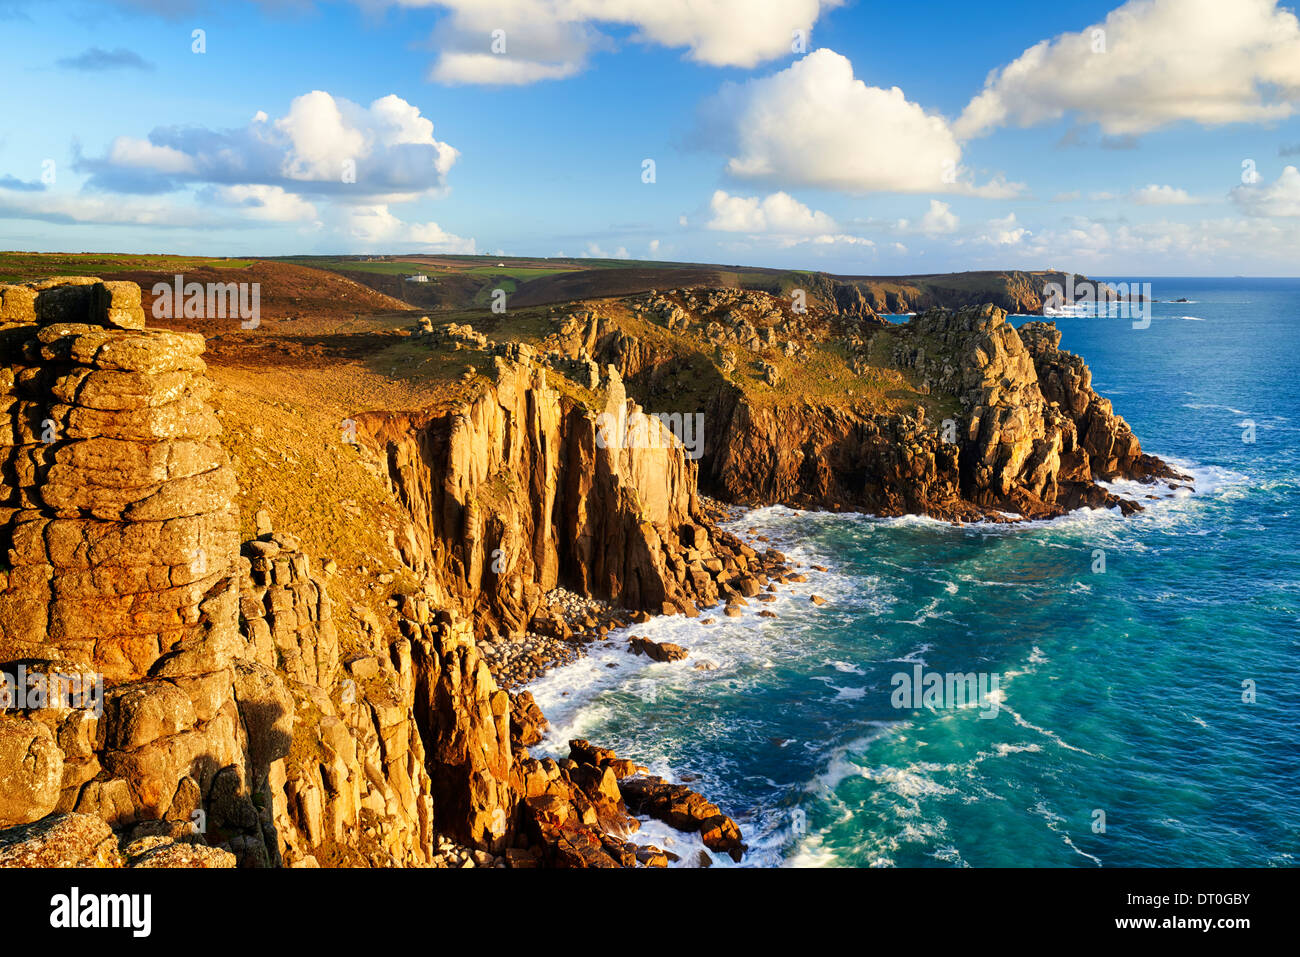 View overlooking Zawn Trevilley and Carn Boel, Land's End - Stock Image